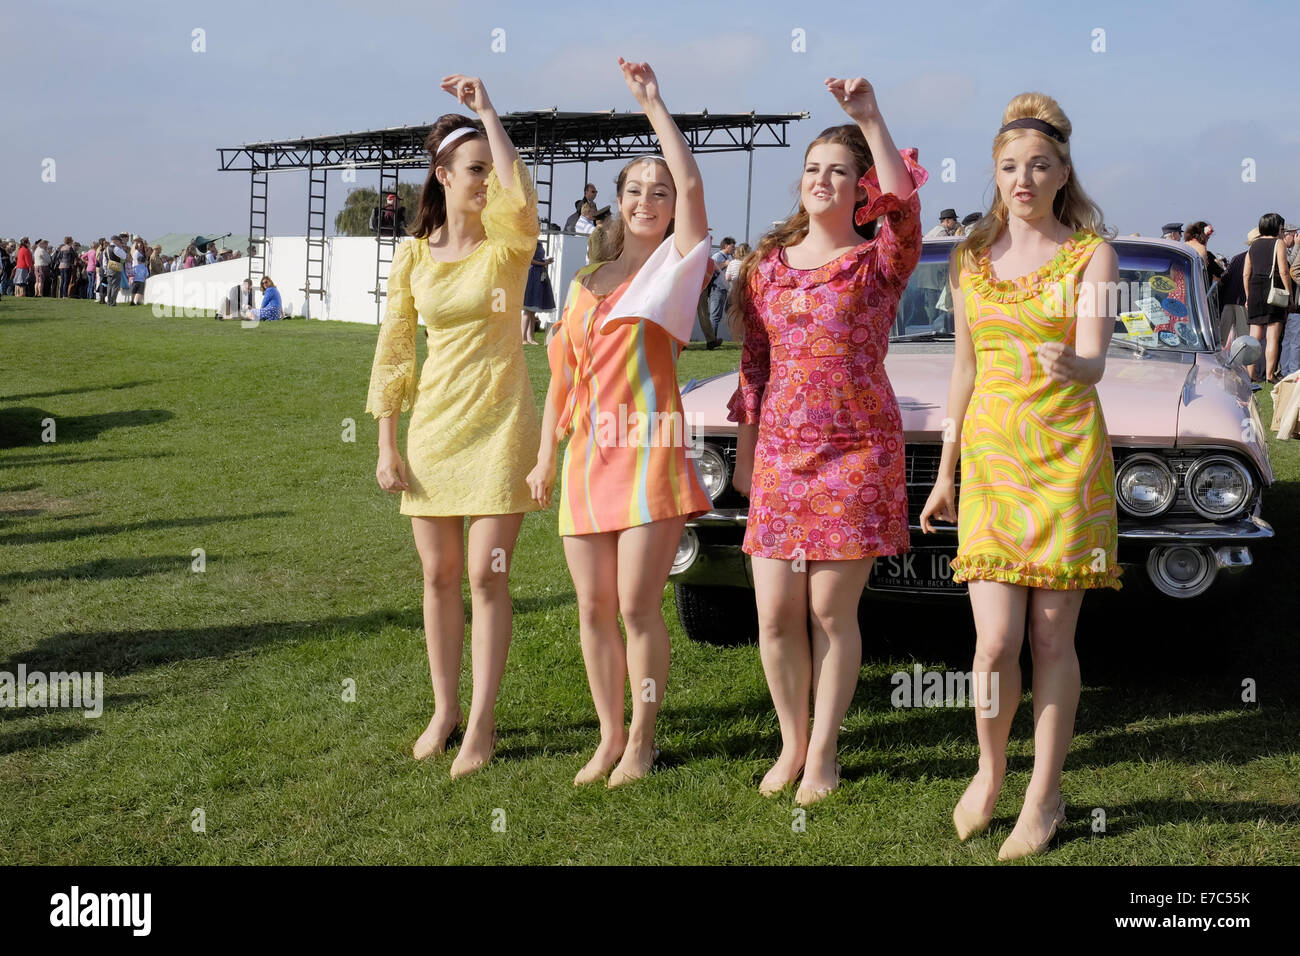 Four pretty young girls in there late teens early twenties dressed in vintage 60s fashion clothing with bright colourful - Stock Image